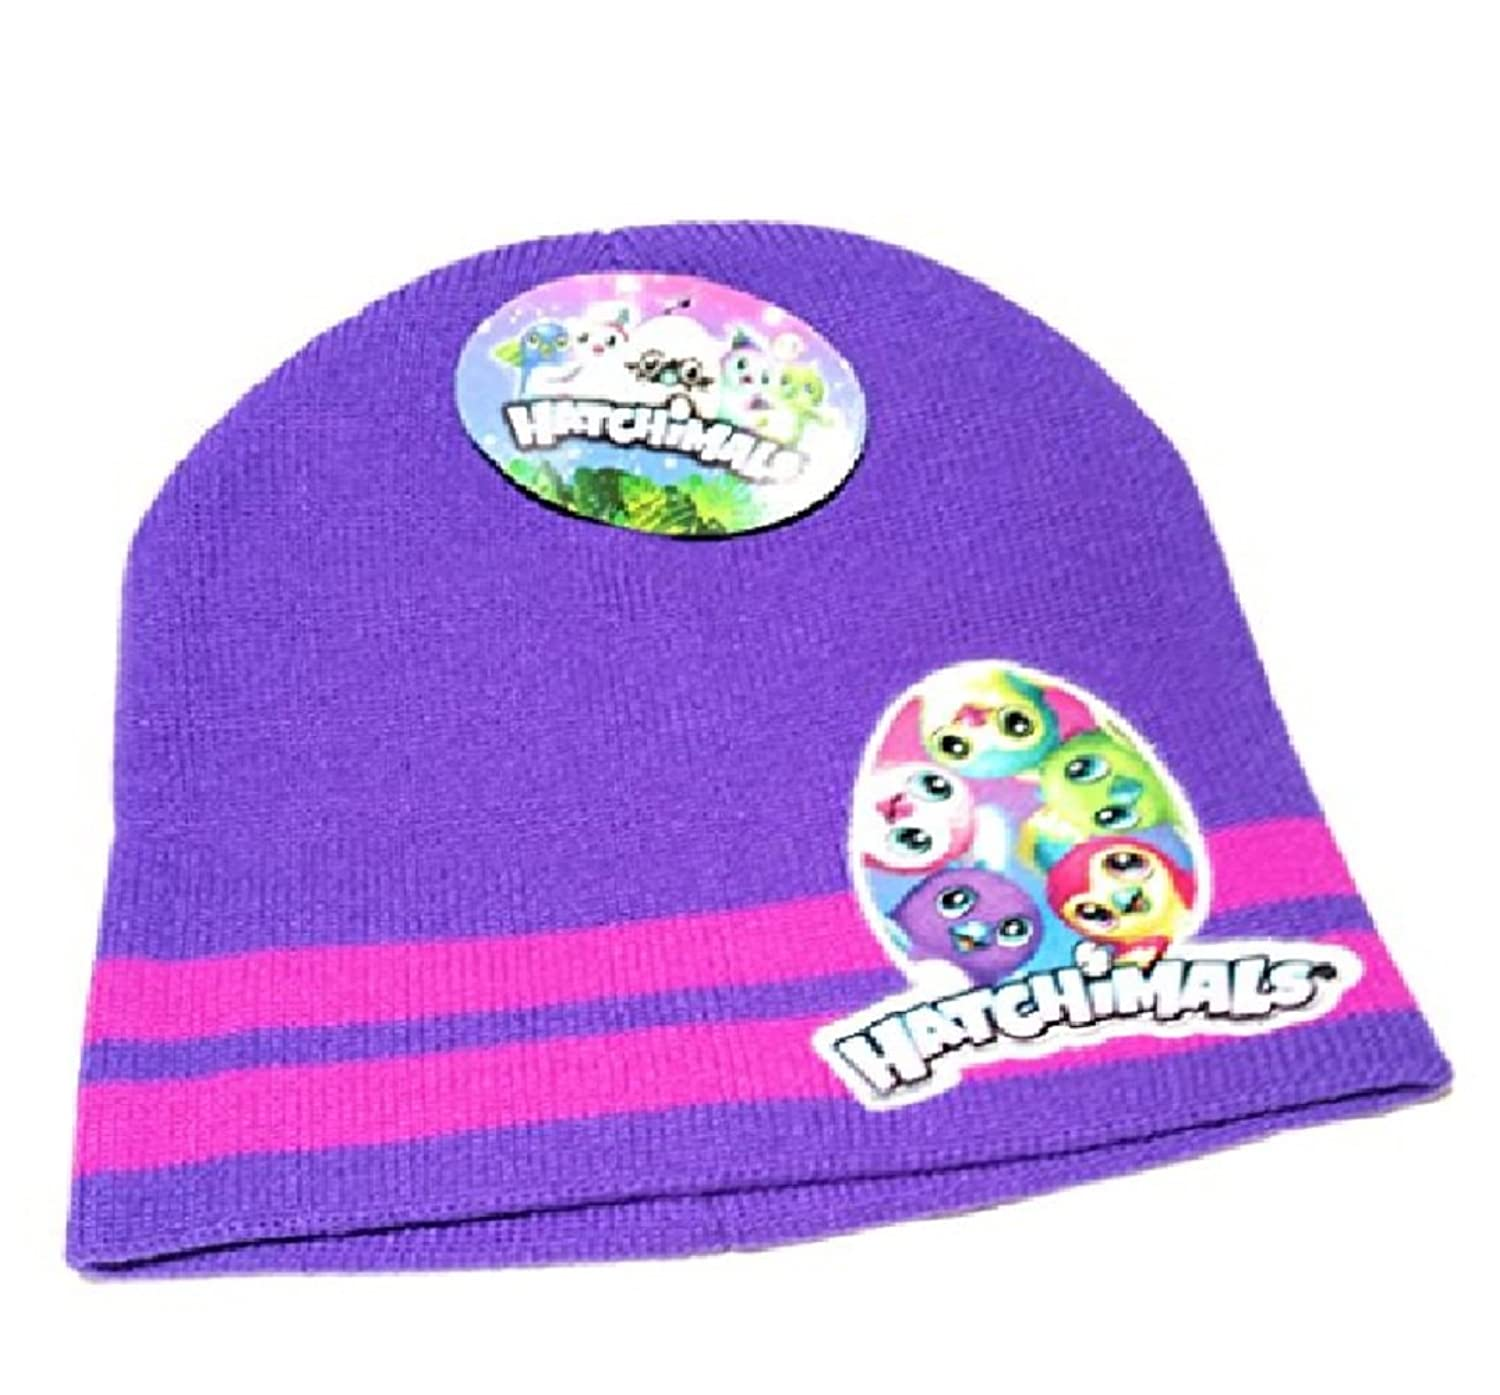 ABG Accessories Hatchimals Girls Beanie Hat Cap